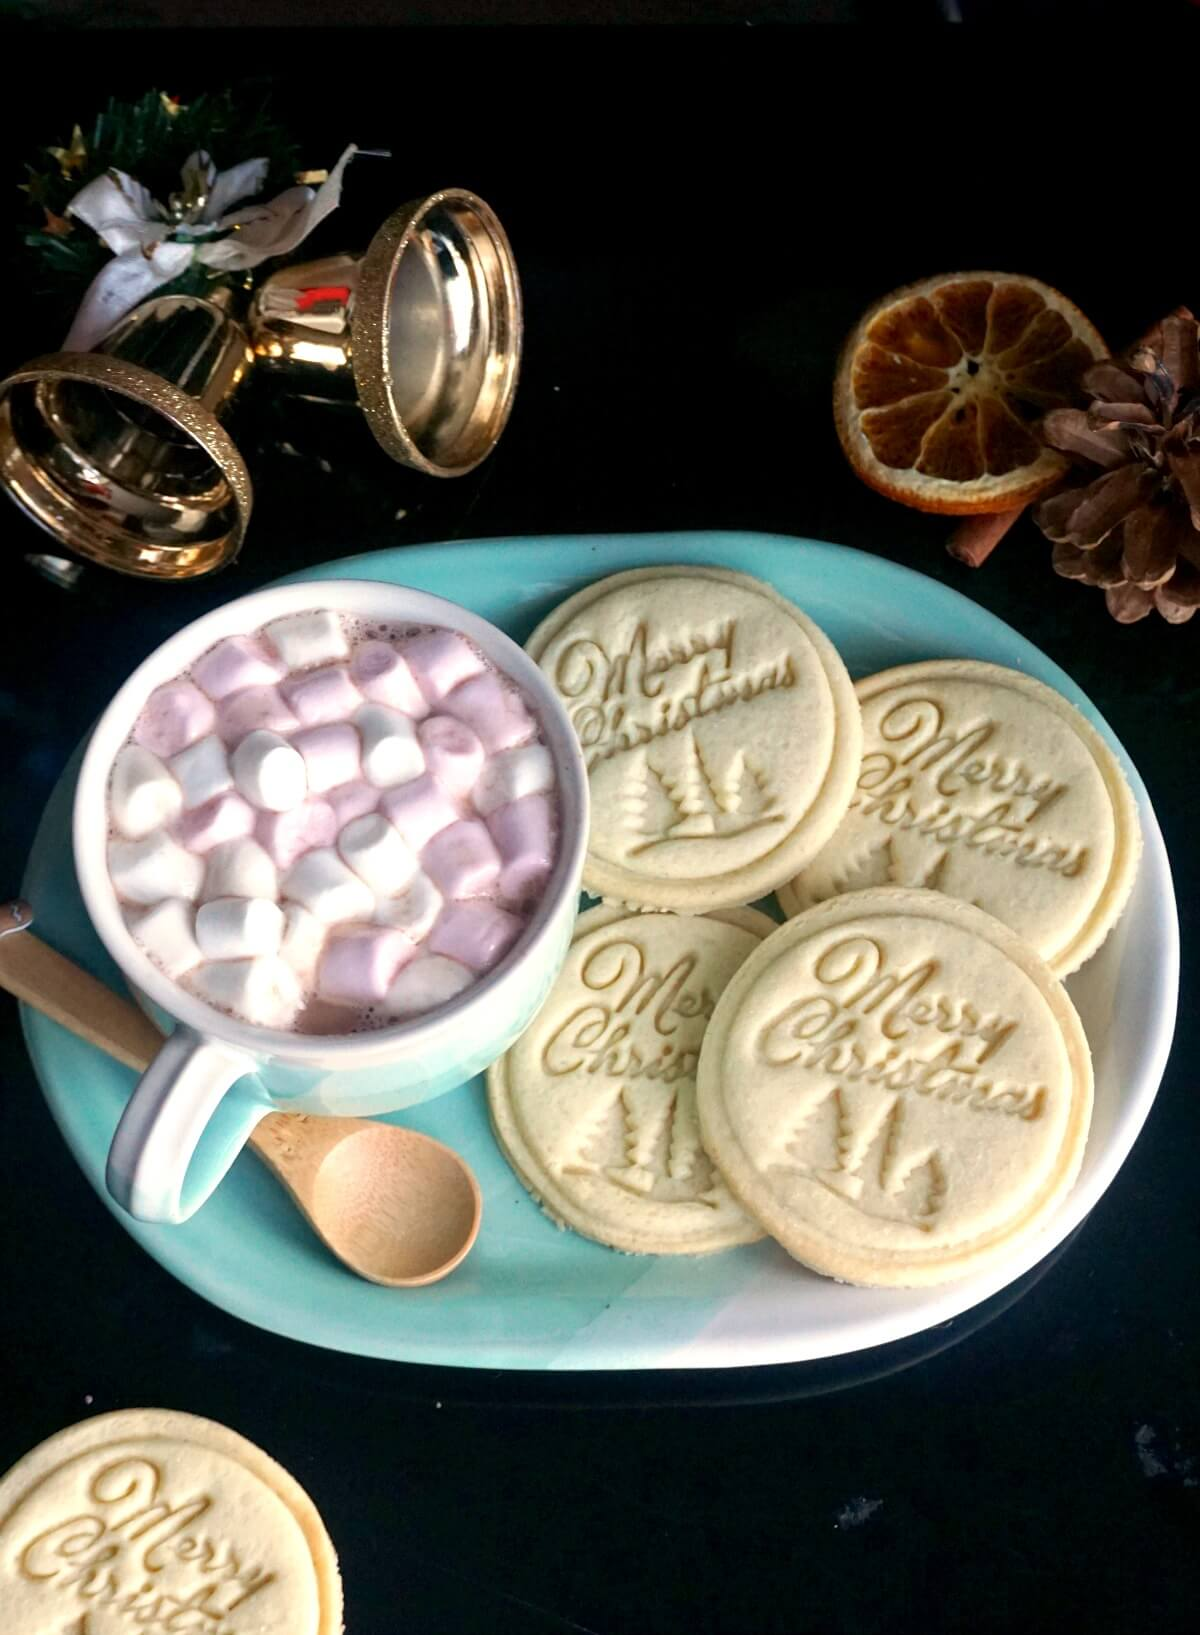 A blue plate with 4 stamped cookies and a cup of hot chocolate and marshmallows